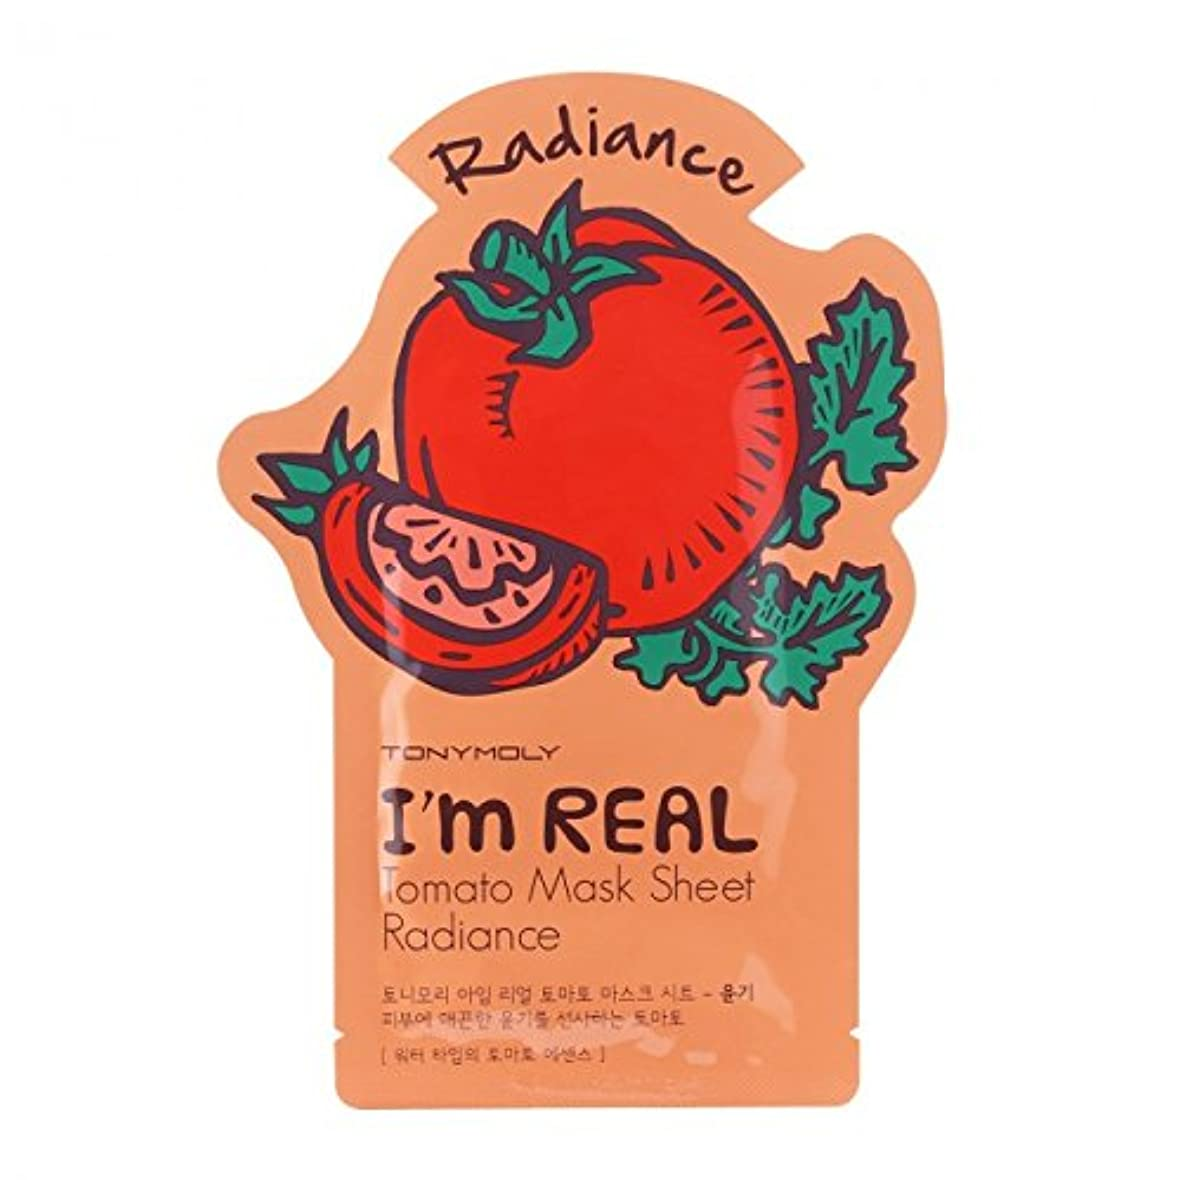 豆適切な声を出して(6 Pack) TONYMOLY I'm Real Tomato Mask Sheet Radiance (並行輸入品)